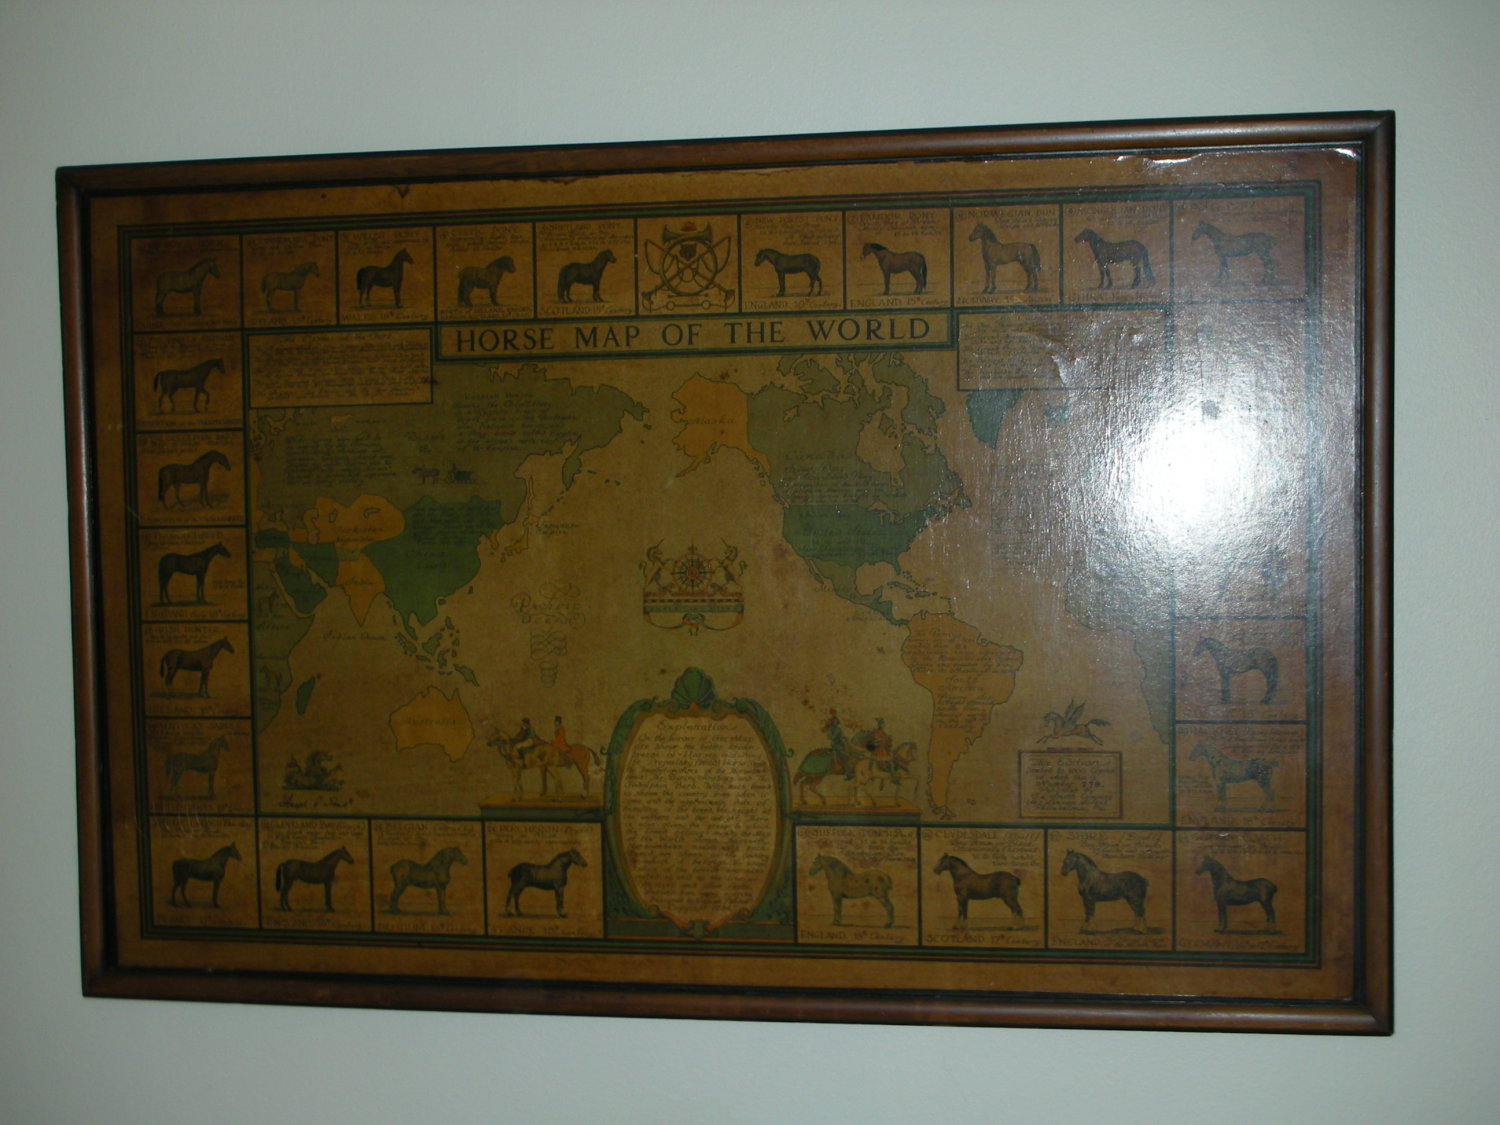 Vintage Horse Map of the World Limited Edition #278 of 1000